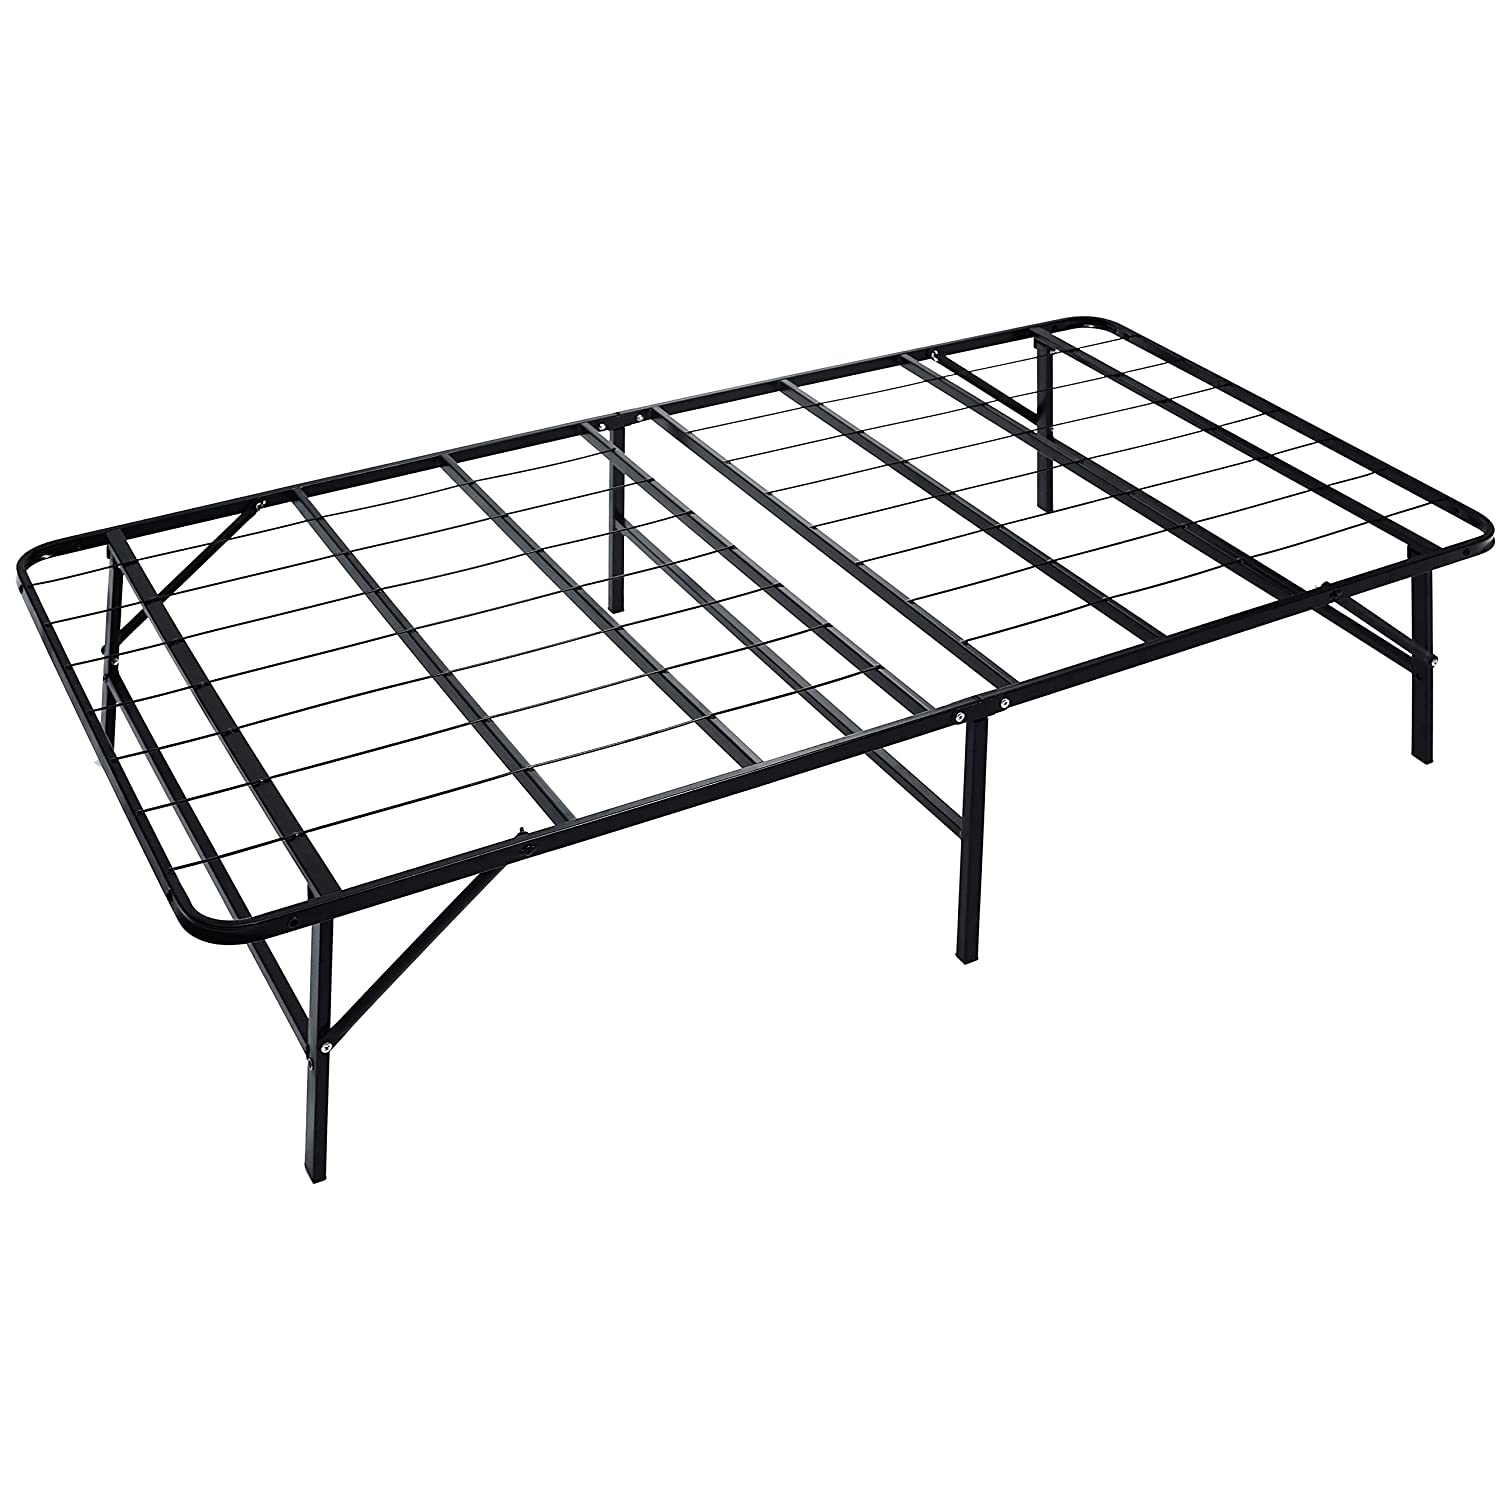 HAAGEEP Twin Bed Frame with Headboard Storage No Box Spring Needed Metal Platform Single Size Bedframe Foundation 14 Inch High